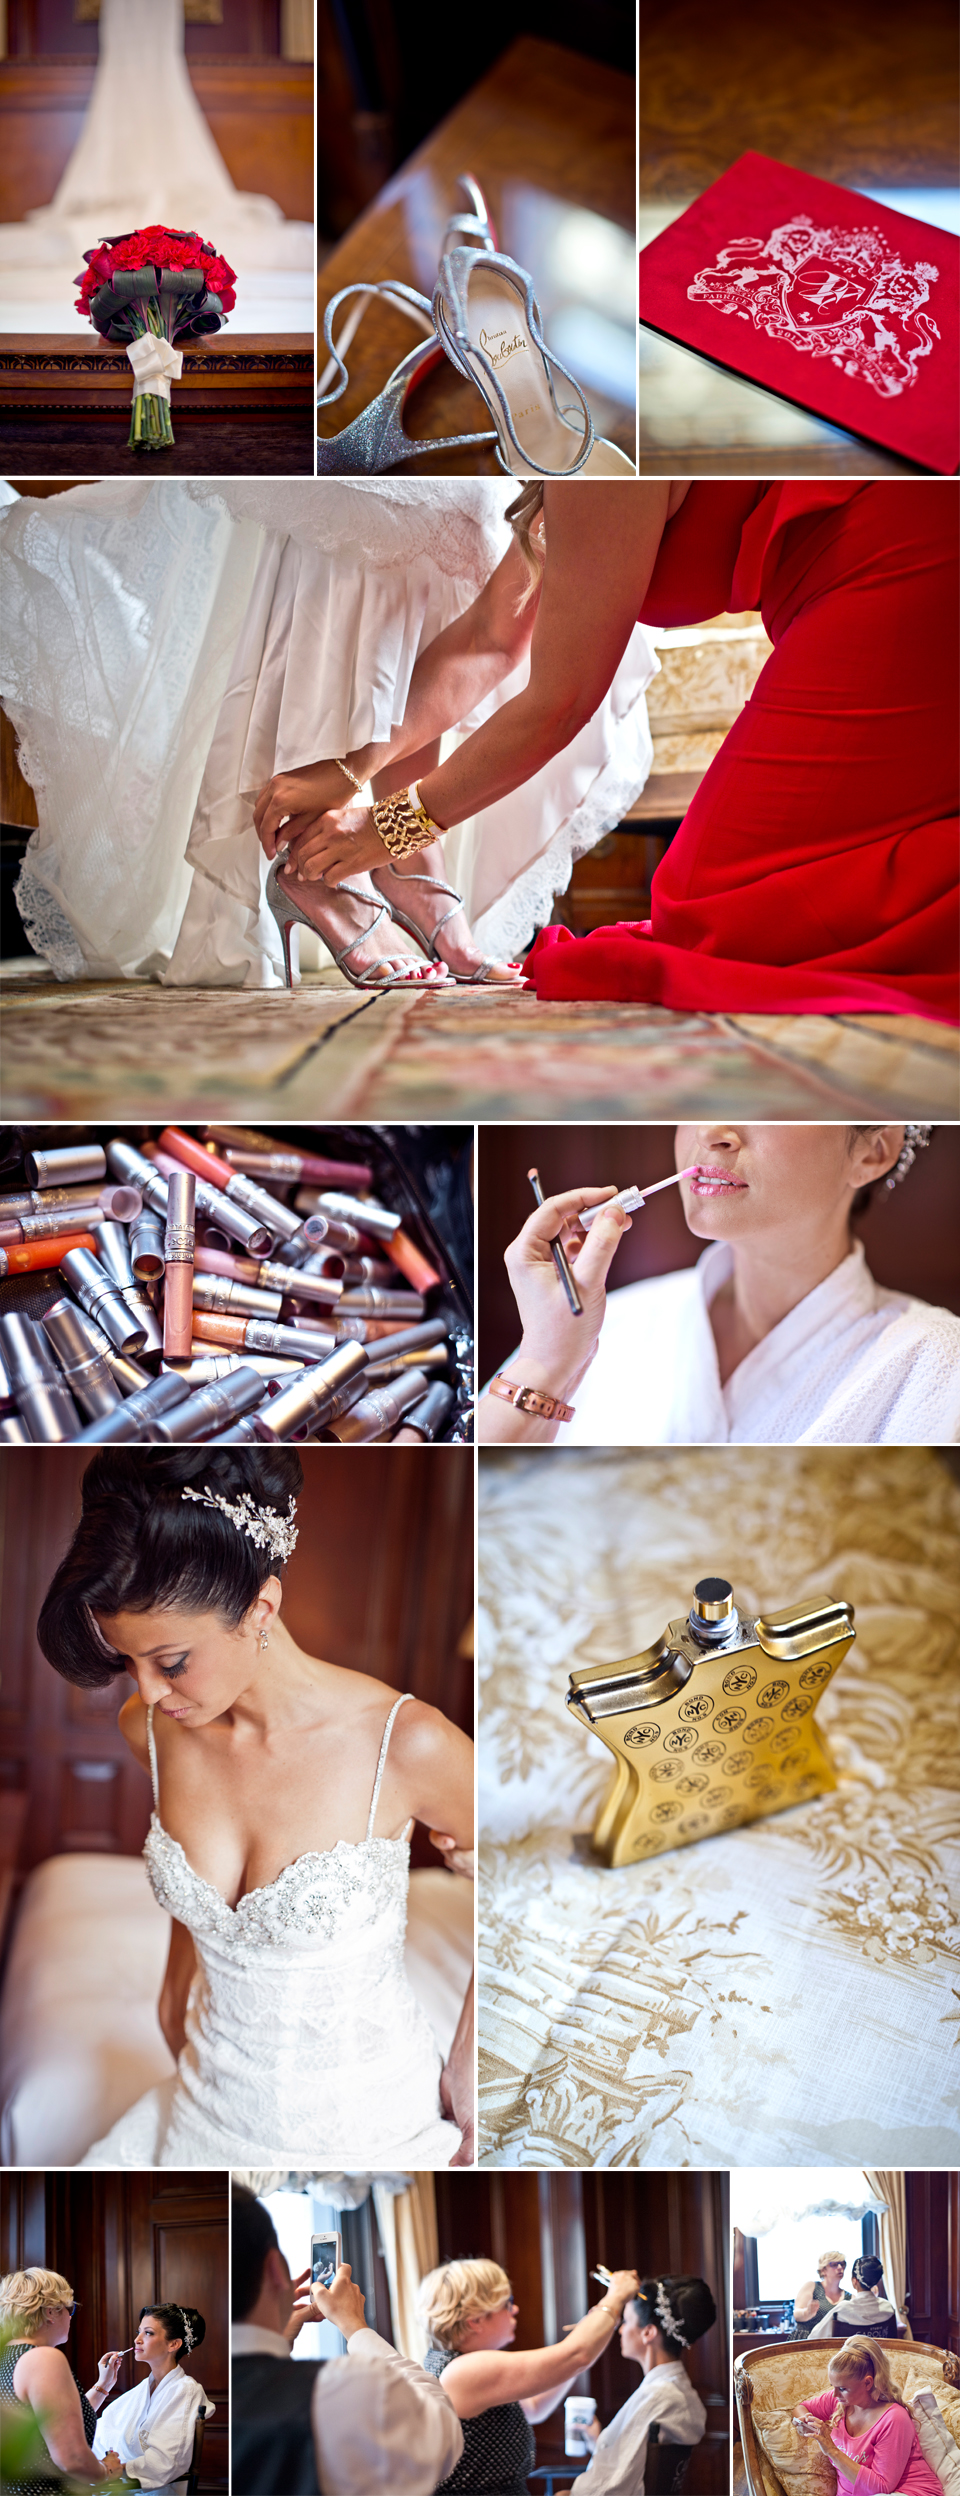 Montreal Wedding Photography | Bridal Details | Hotel Le St-James | Science Center | Old Port | LindsayMuciyPhotography